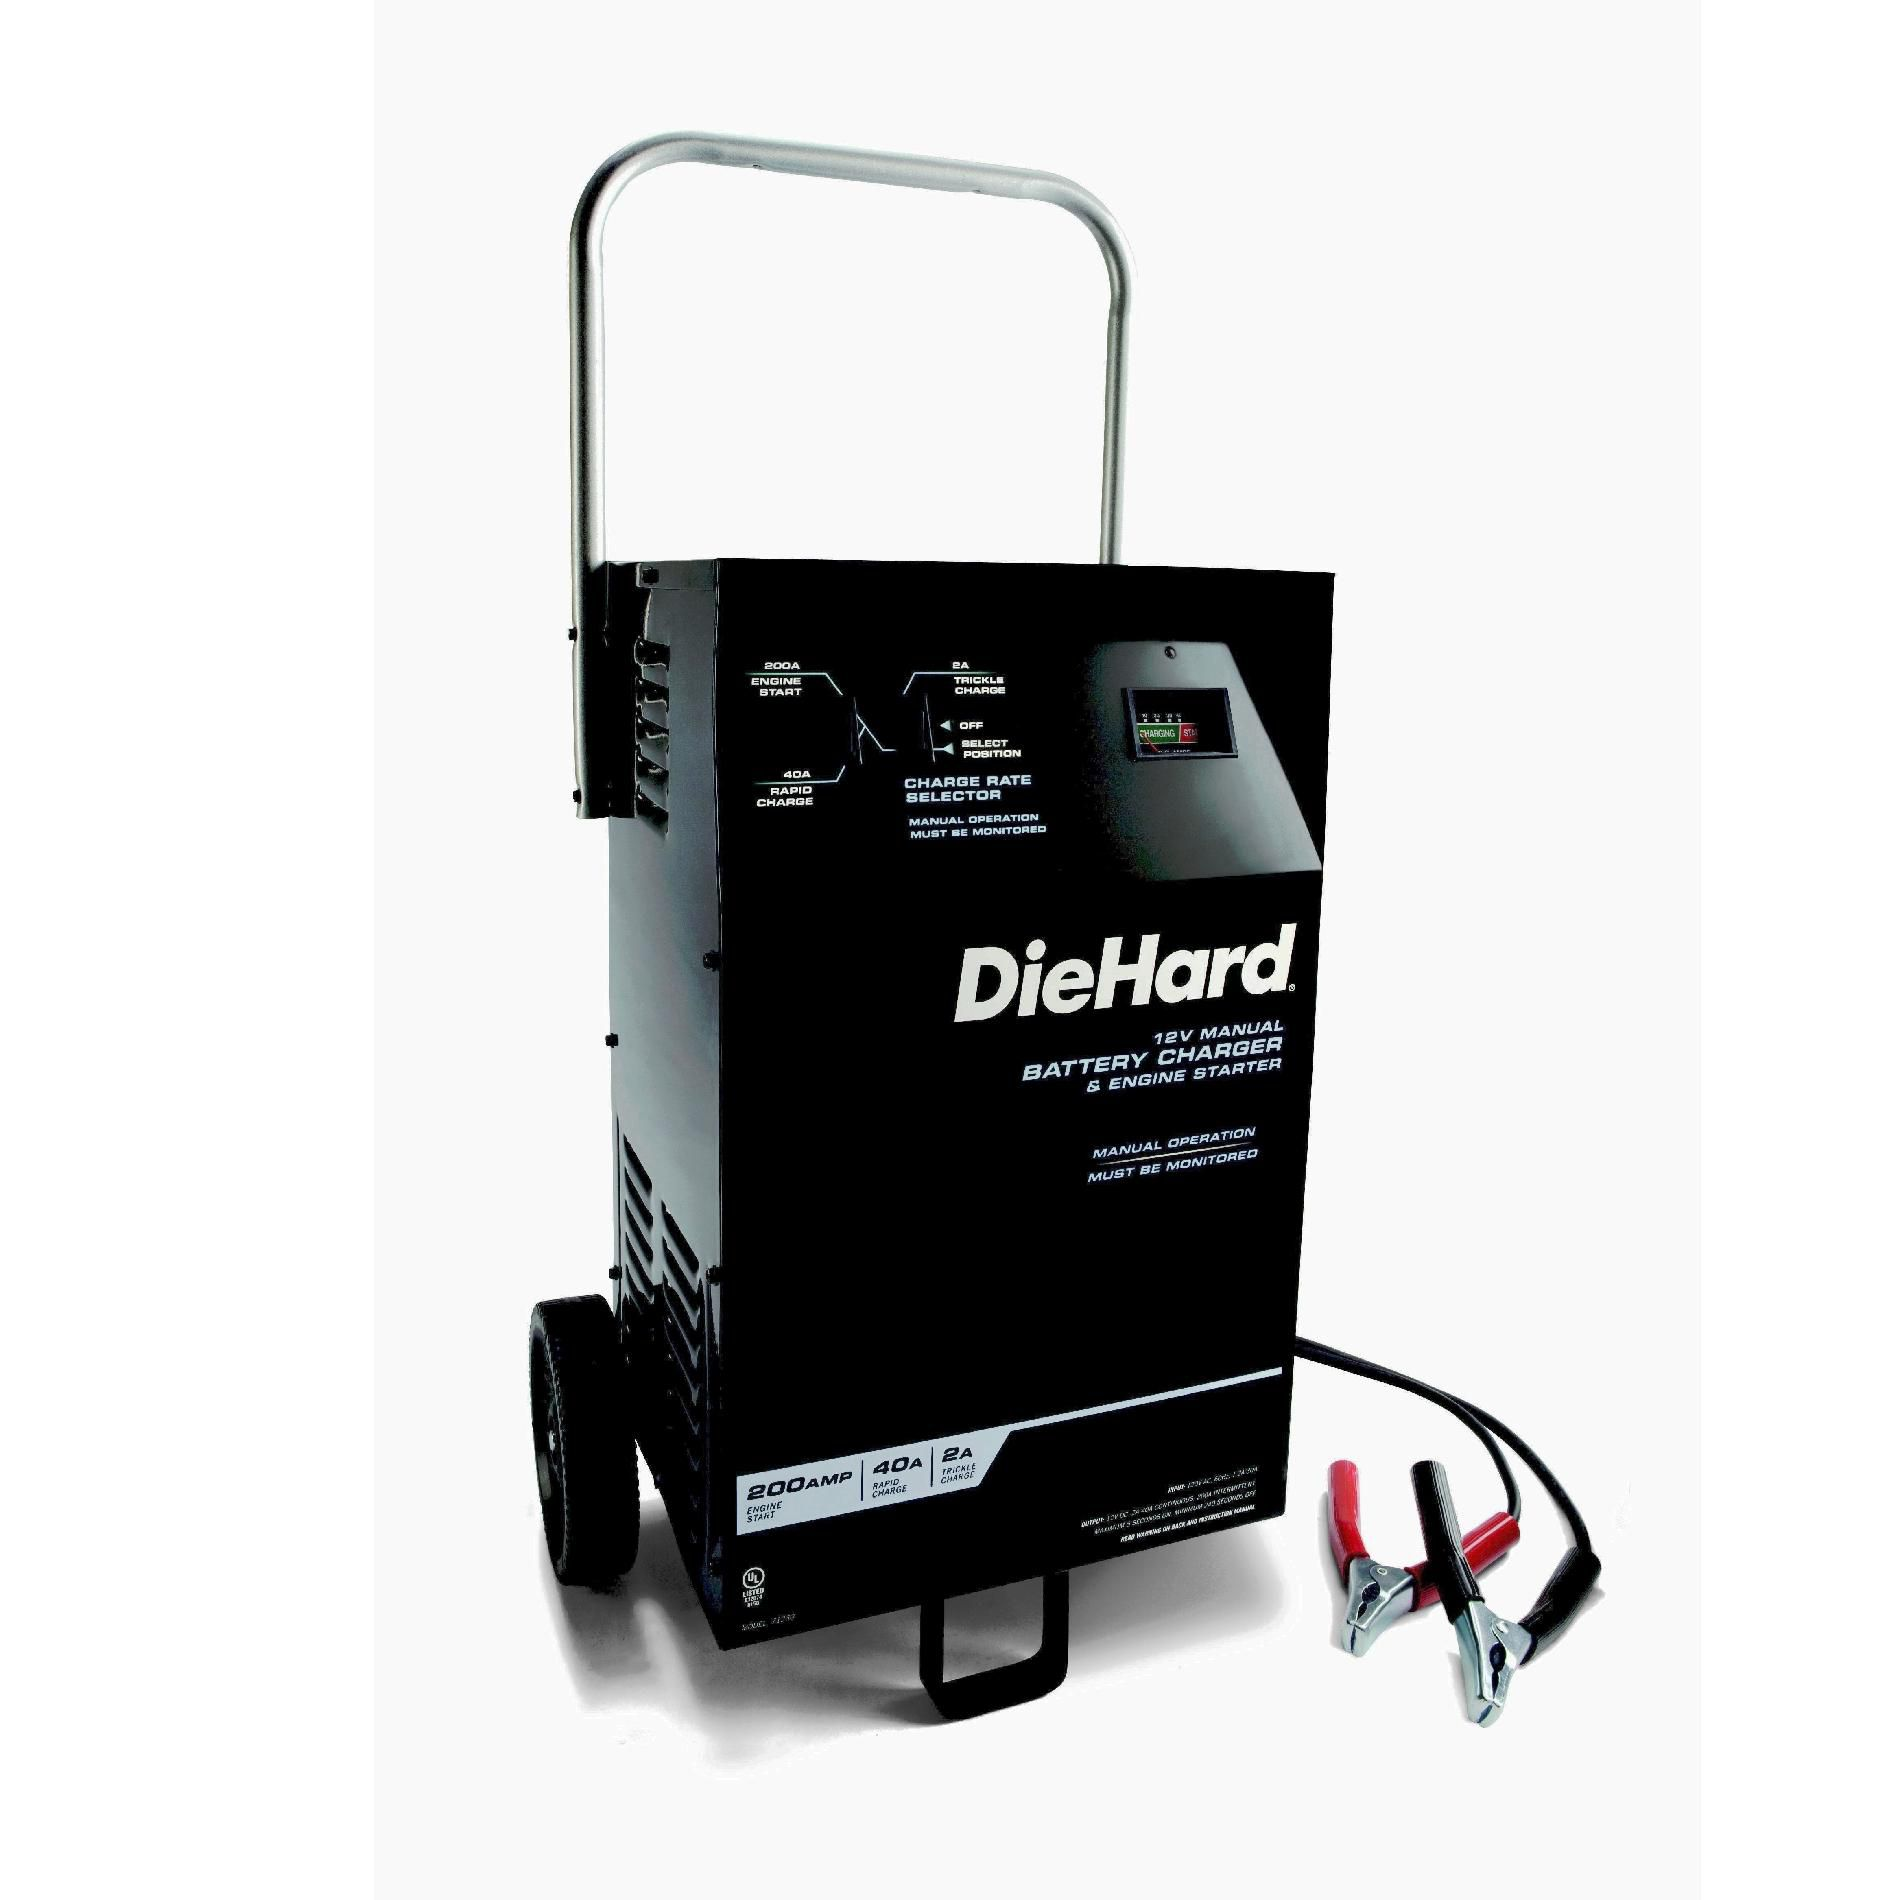 DieHard  Manual Wheeled Charger/Starter